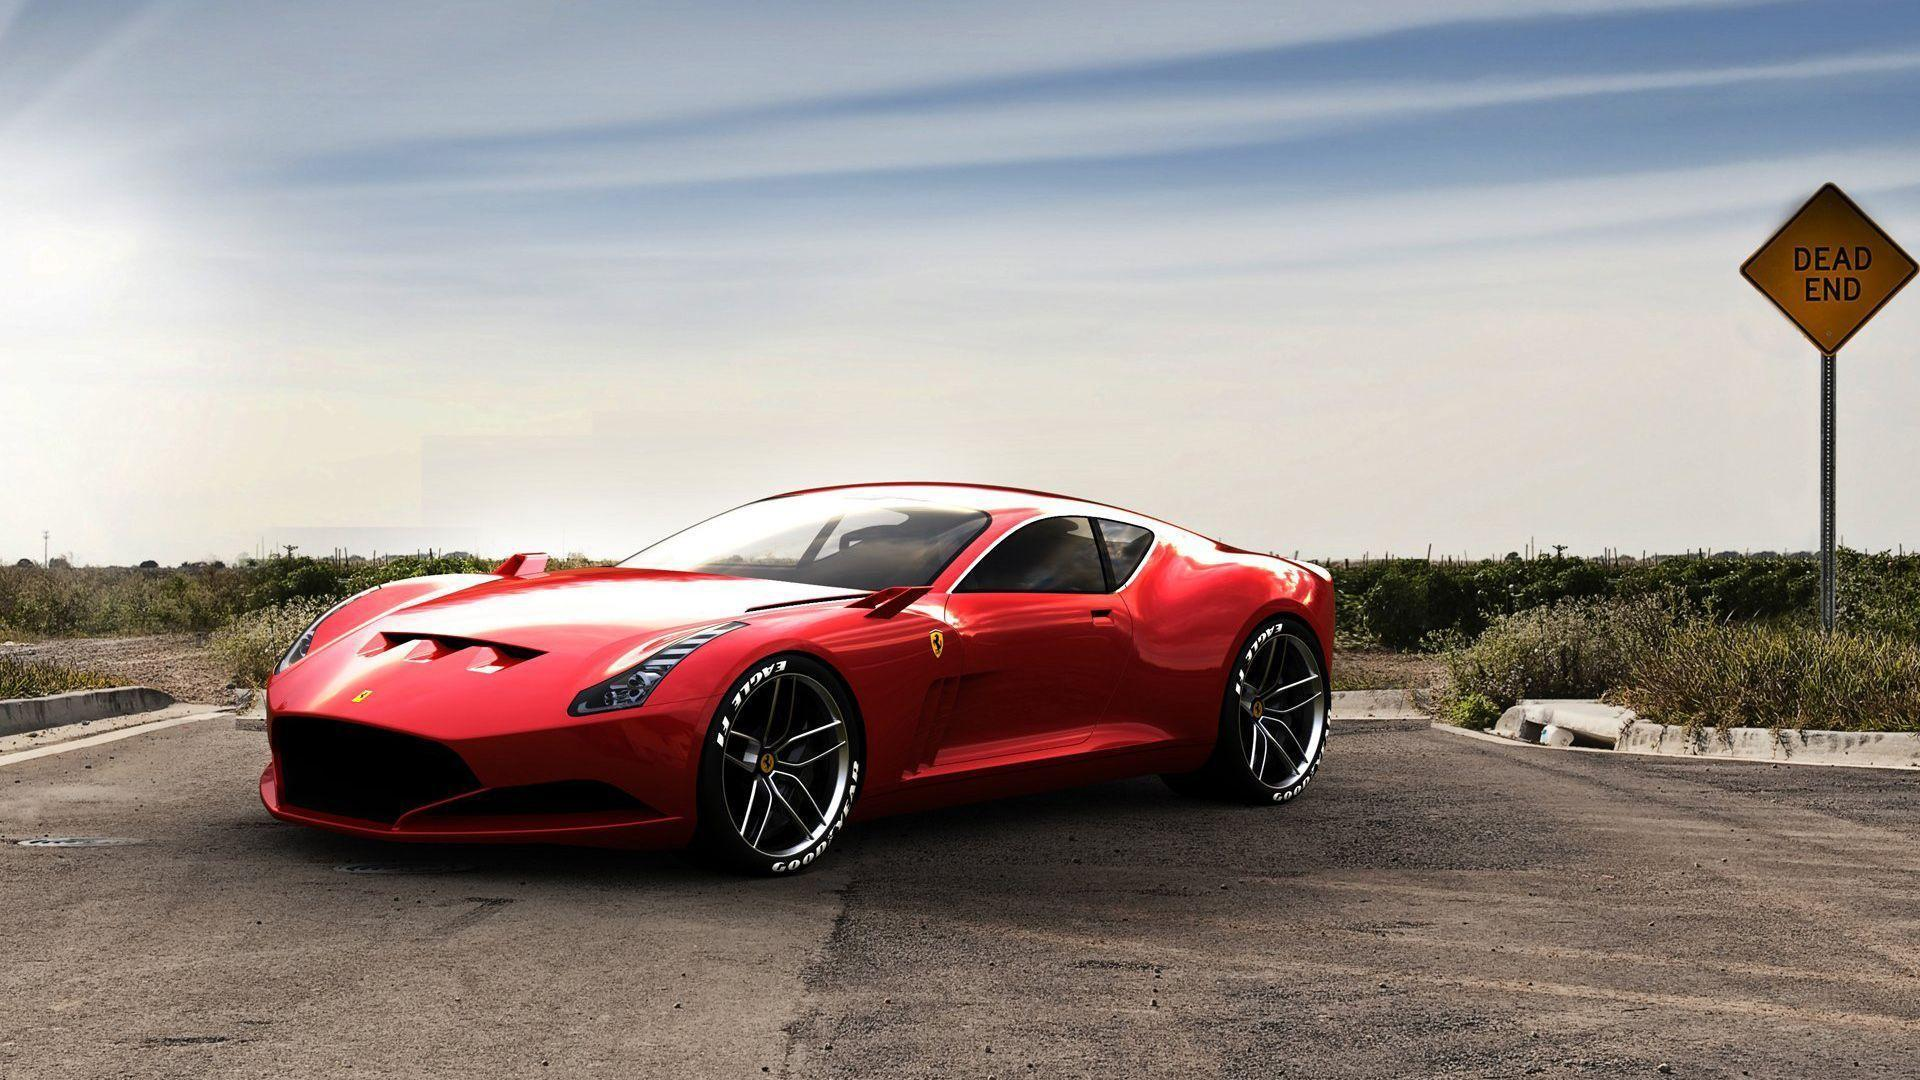 Sports Cars Wallpapers Sports Cars Wallpapers Hd Car Motor Sport ...